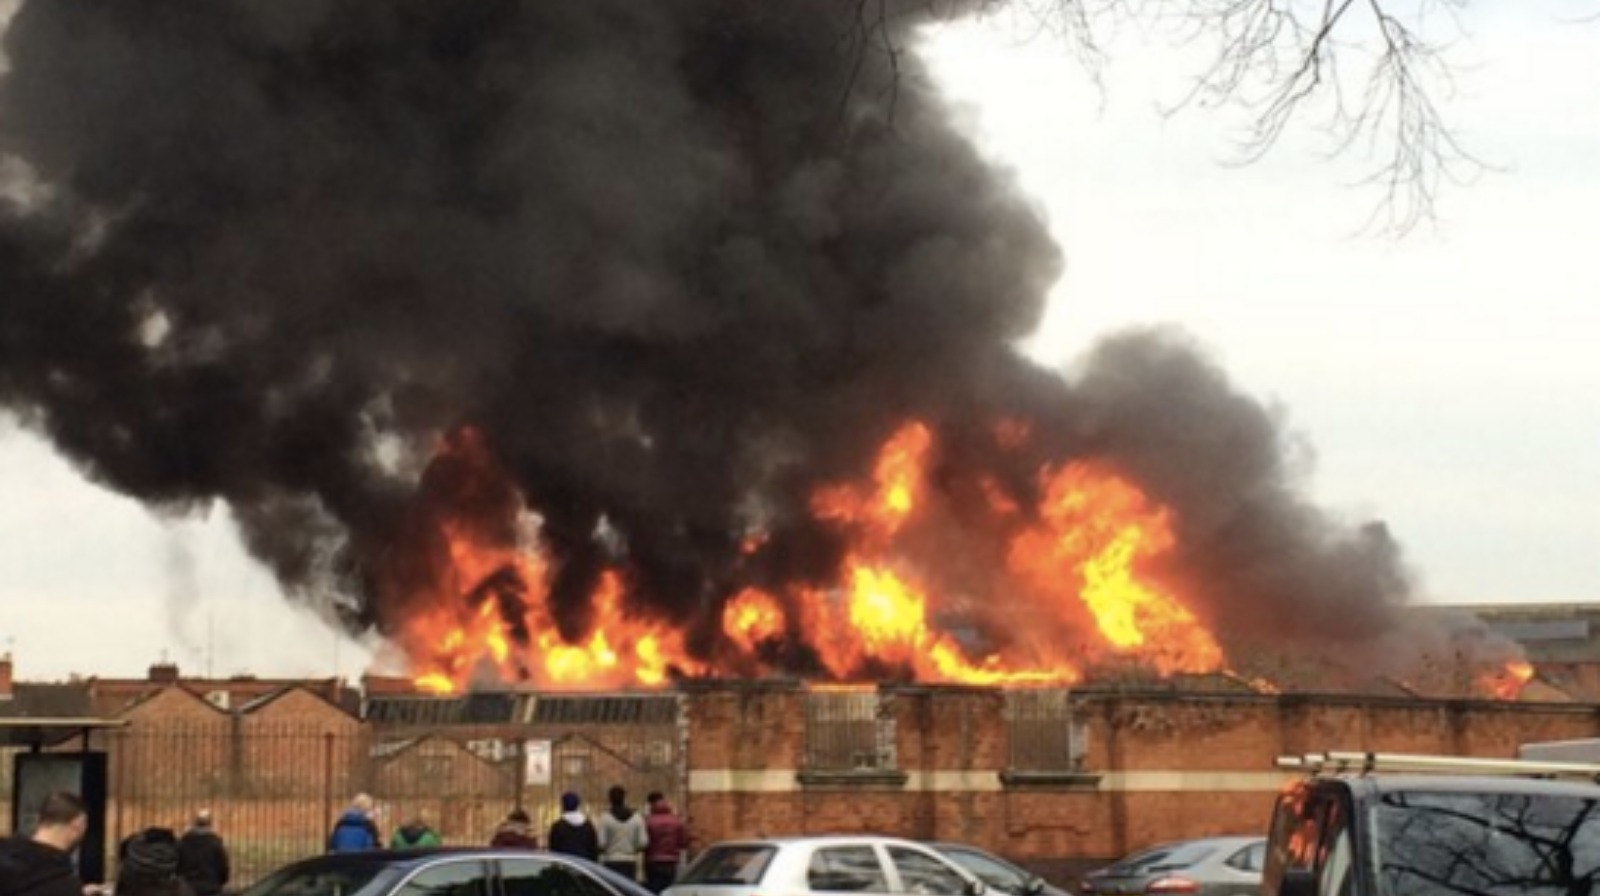 Road closures in Leicester following factory fire